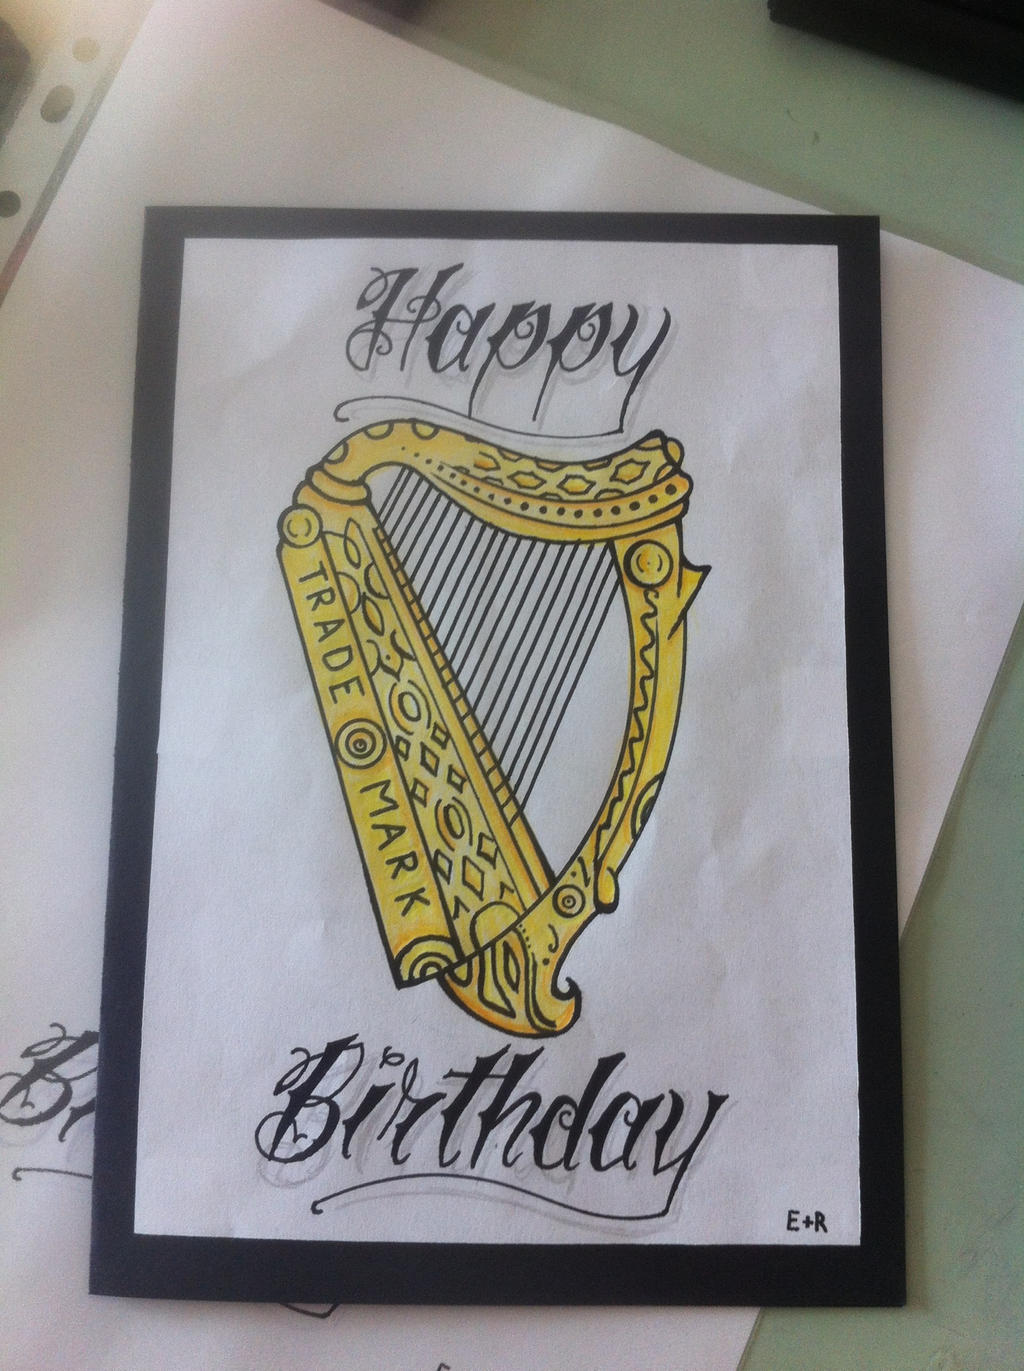 guinnes harp birthday card tattoo style by ricogrande on deviantart, Birthday card